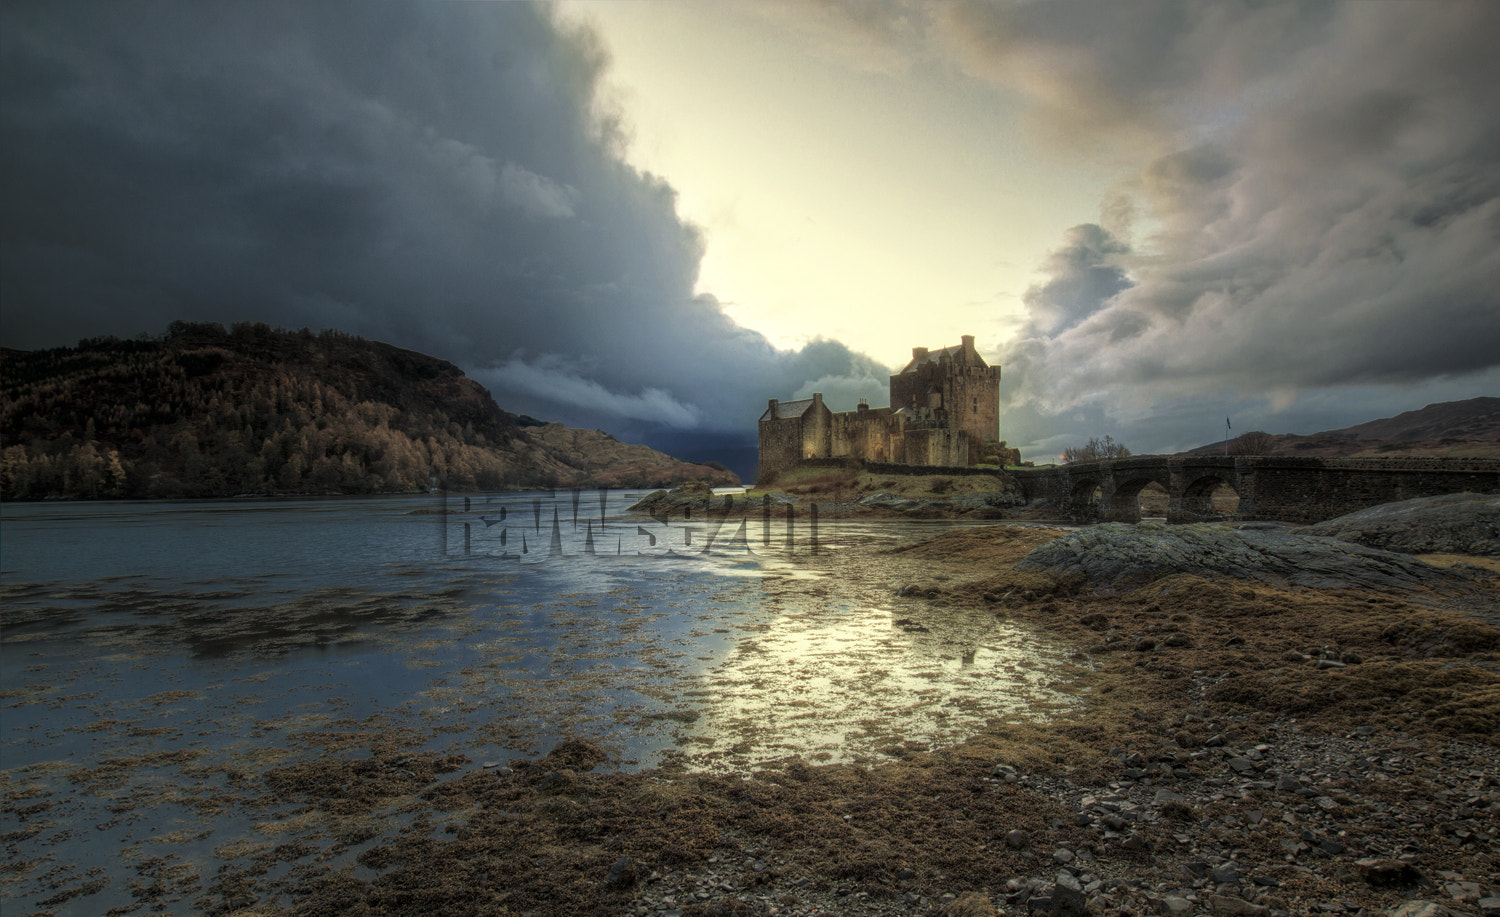 Photograph eilean donan castle by Ray Wise on 500px